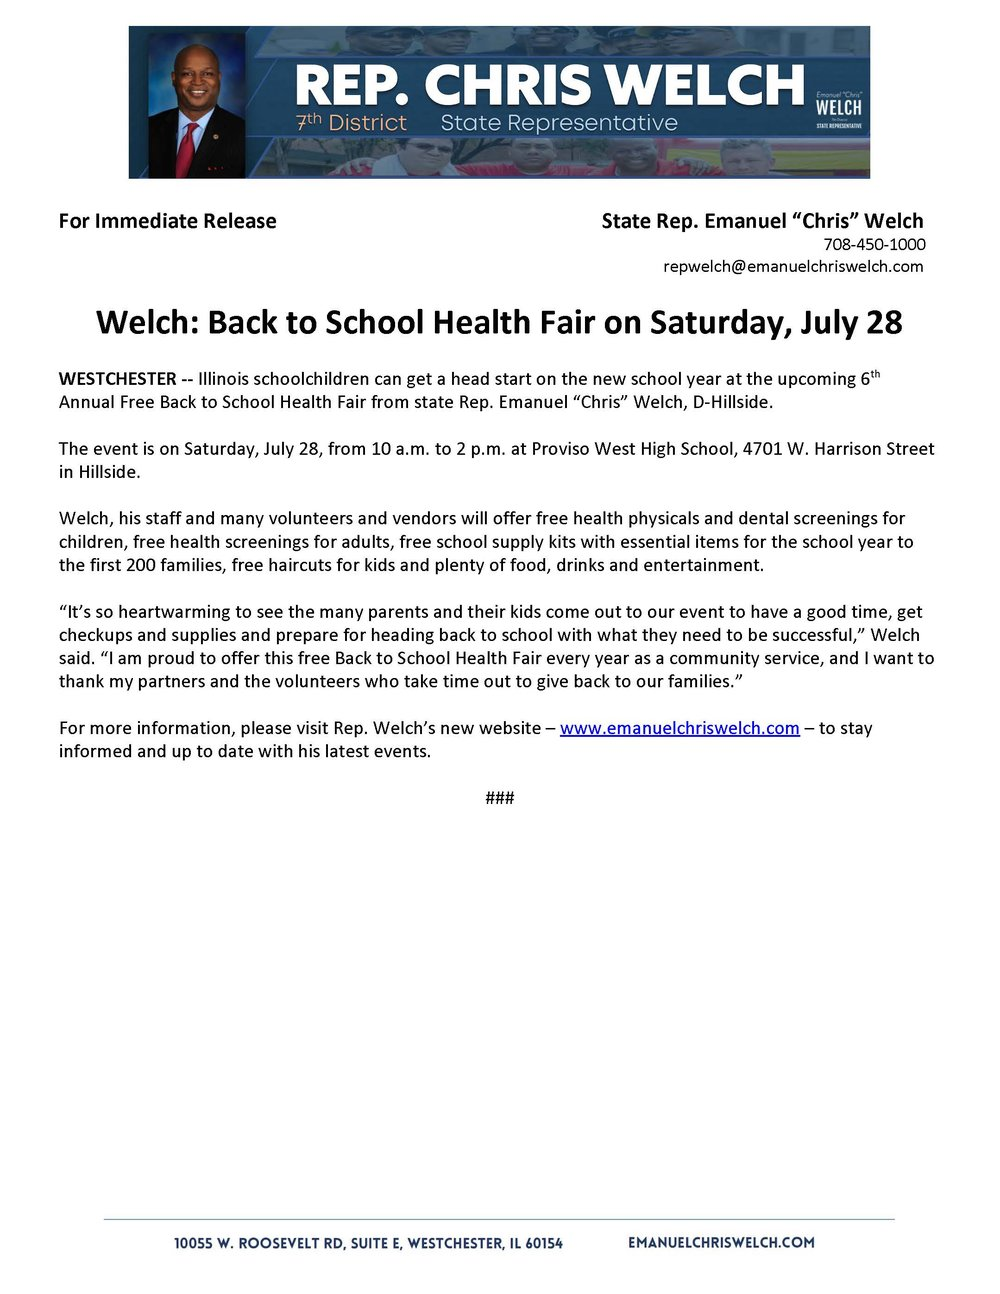 Welch: Back to School Health Fair on Saturday, July 28   (July 27, 2018)